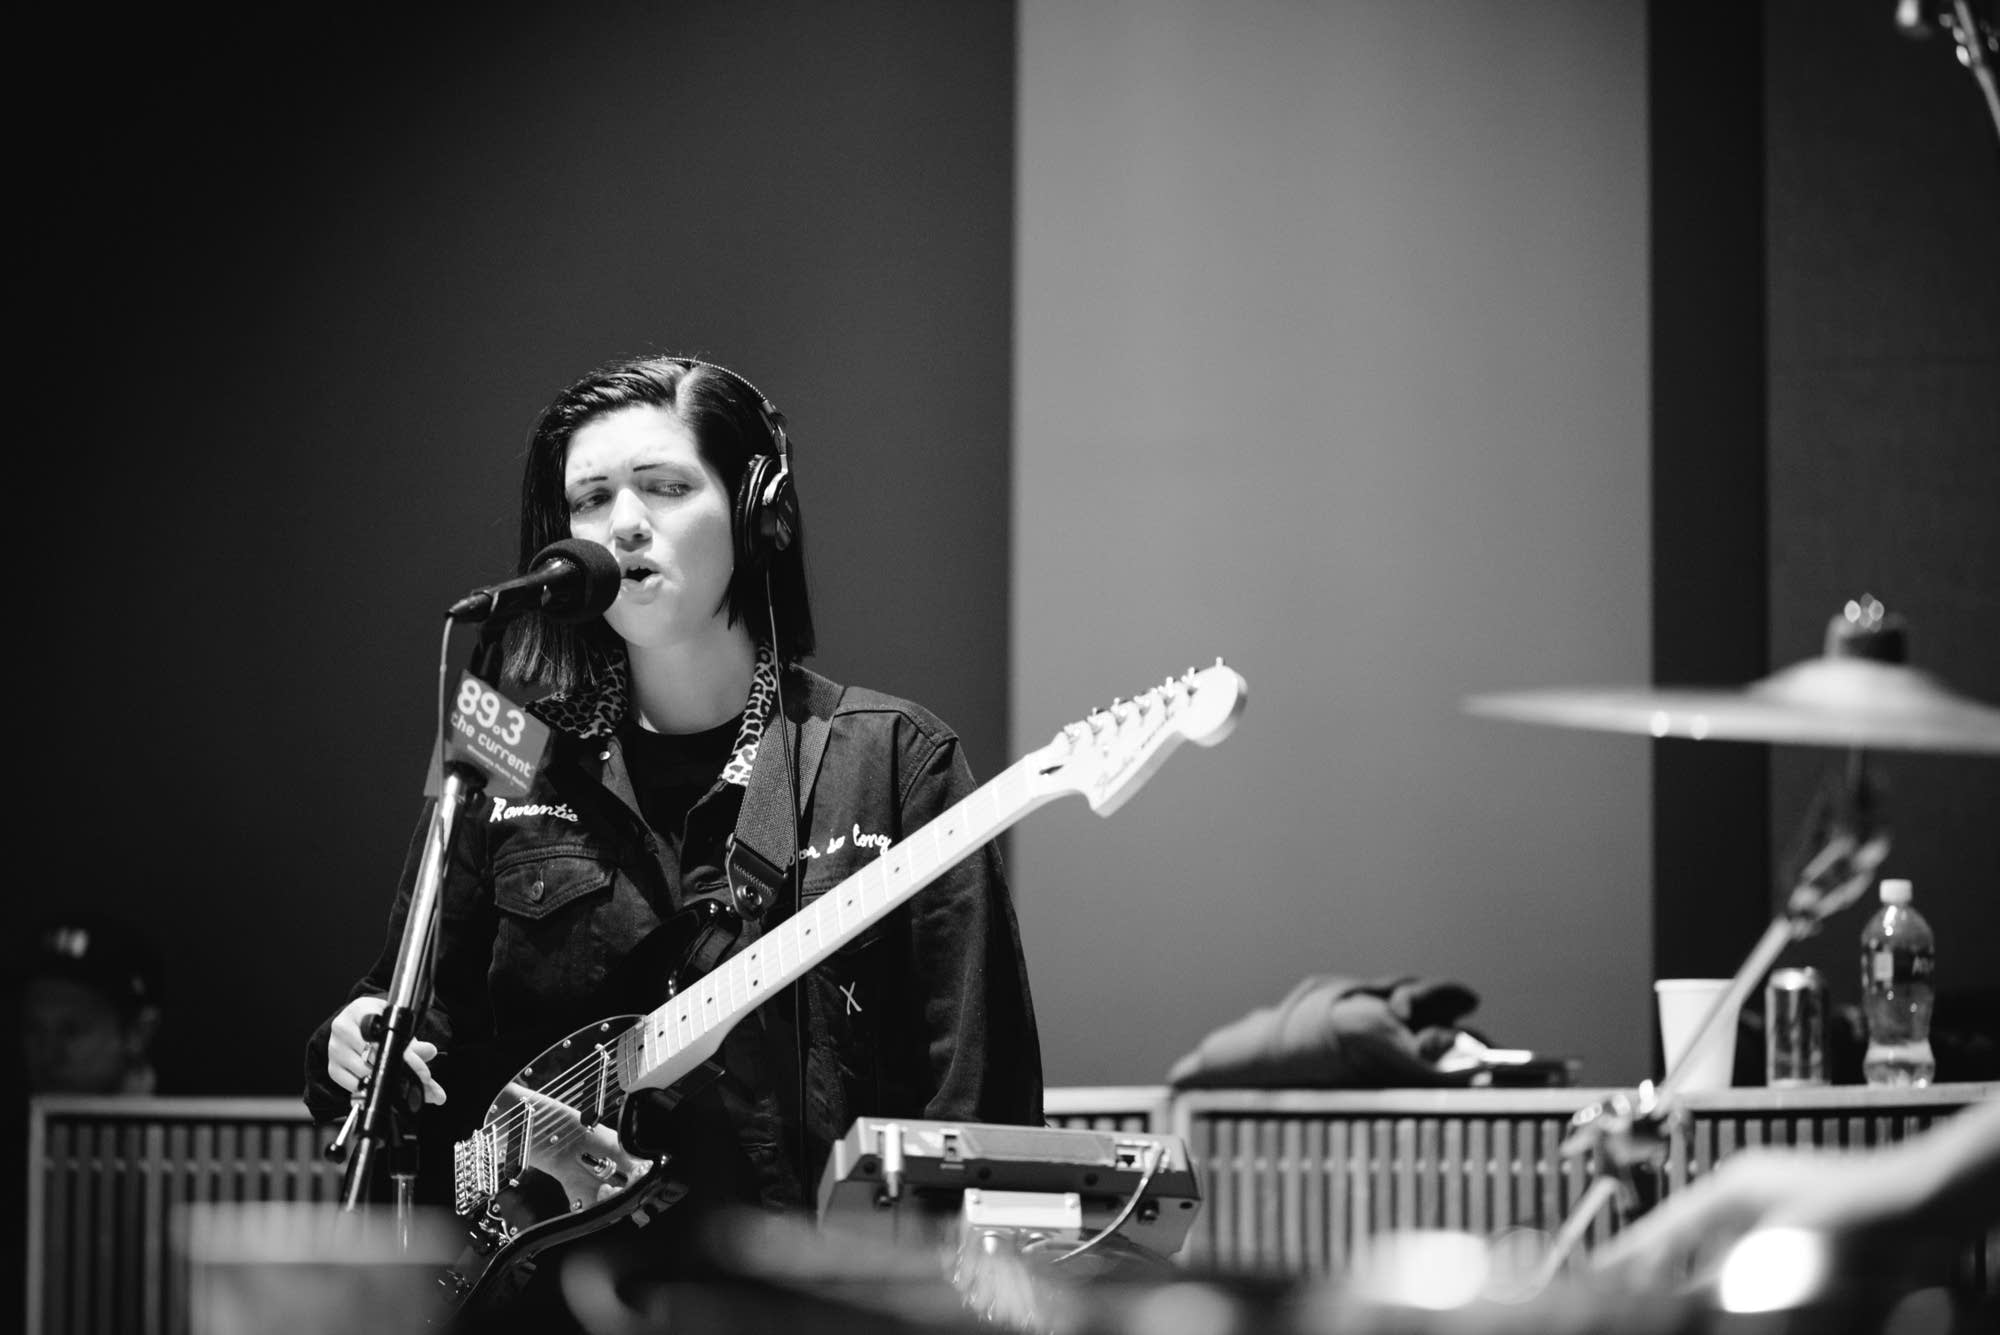 The xx perform in The Current studio